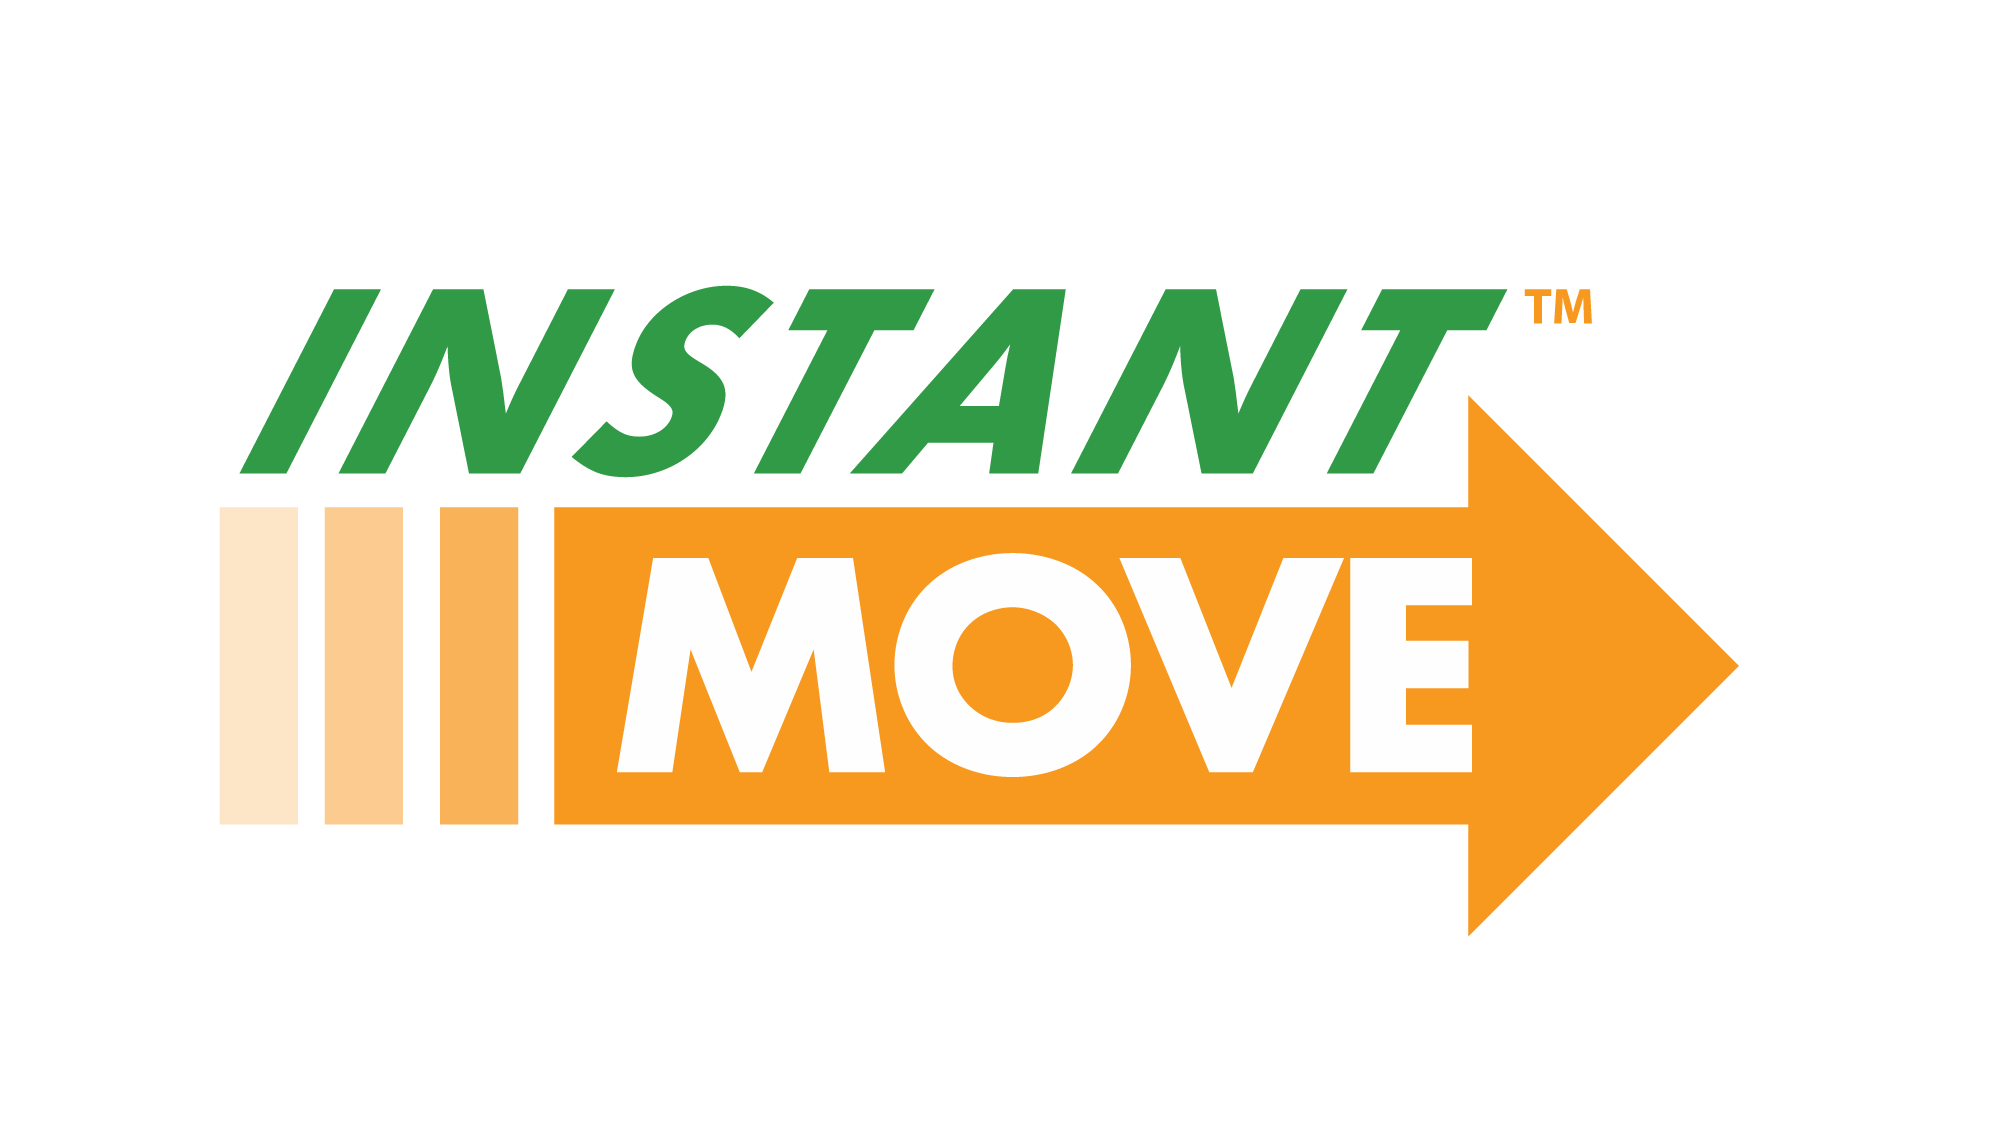 The Instant Move CMA is a tool designed for comparison purposes only, and doesn't indicate actual offers. The offer estimates and cost estimates are created using internal and publicly available industry data, and are based strictly off of the approximate home value entered and general area where the home is located.